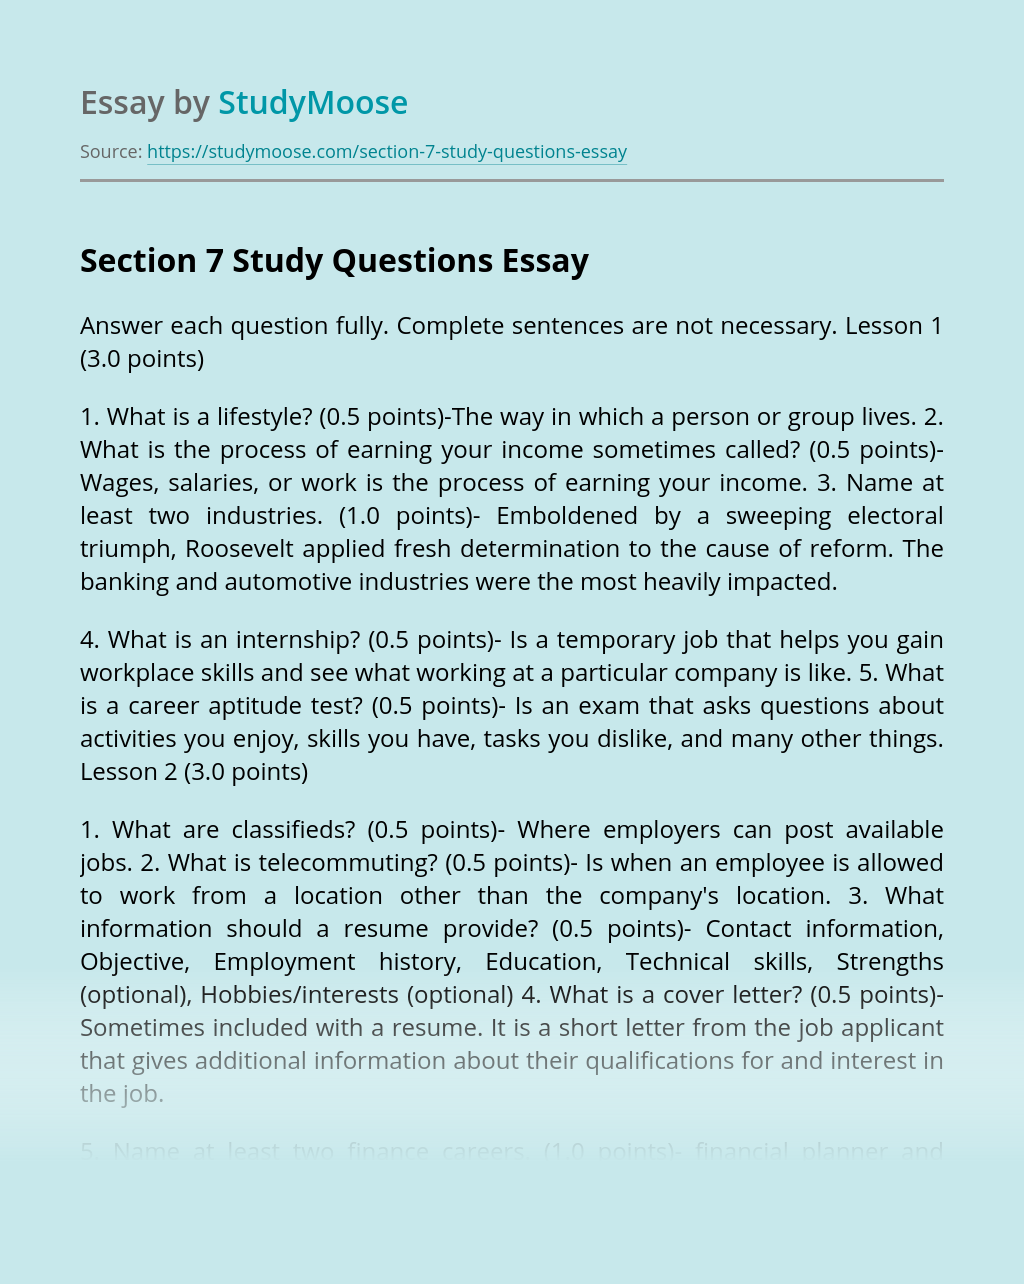 Section 7 Study Questions